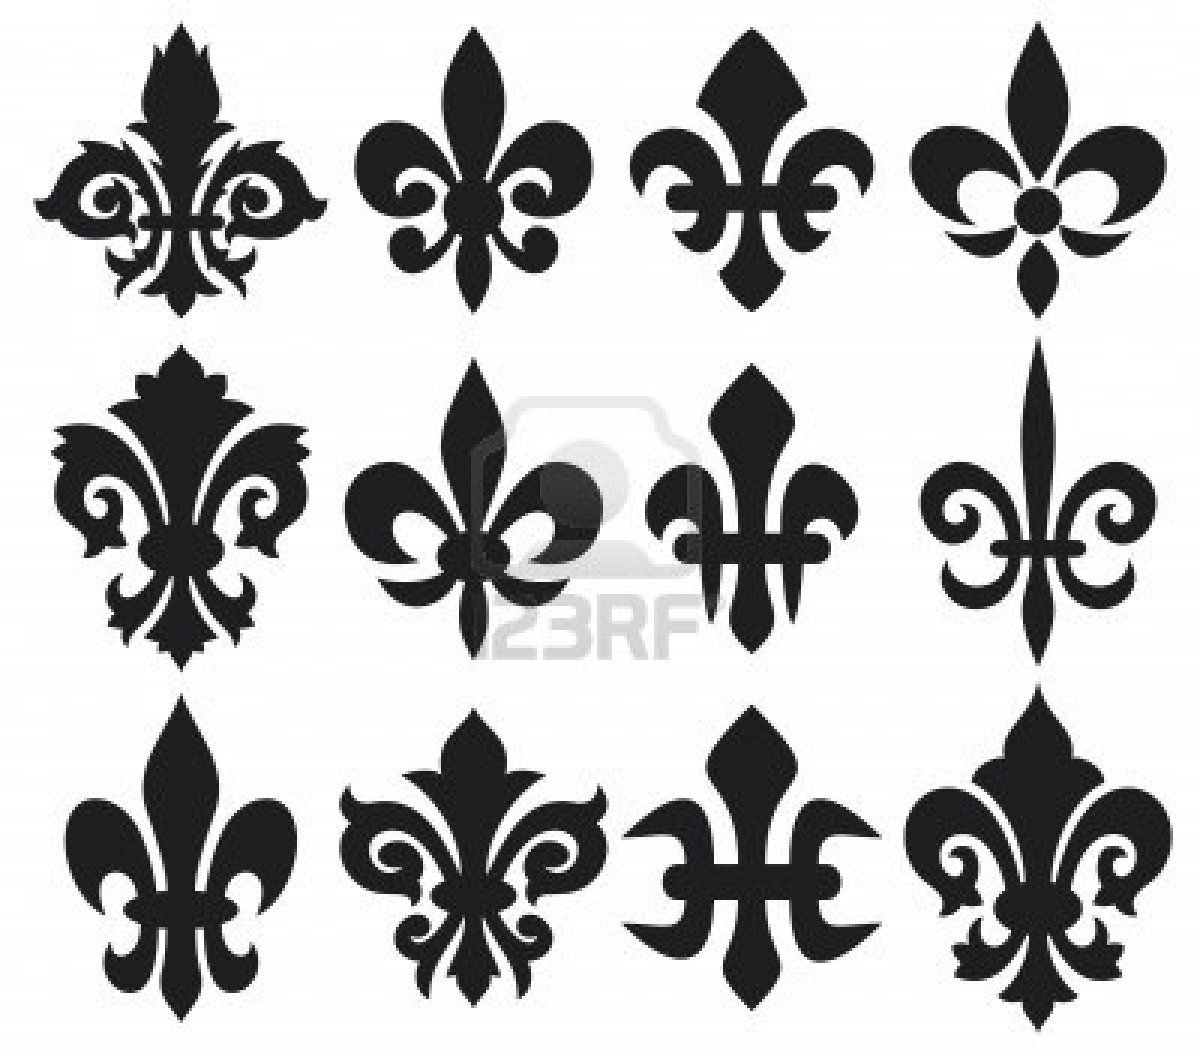 Flour de lis new orleans pinterest stenciling tattoo and lily flower heraldic symbol fleur de lis royal french lily symbols for design and decorate lily flowers collection lily flowers set buycottarizona Images